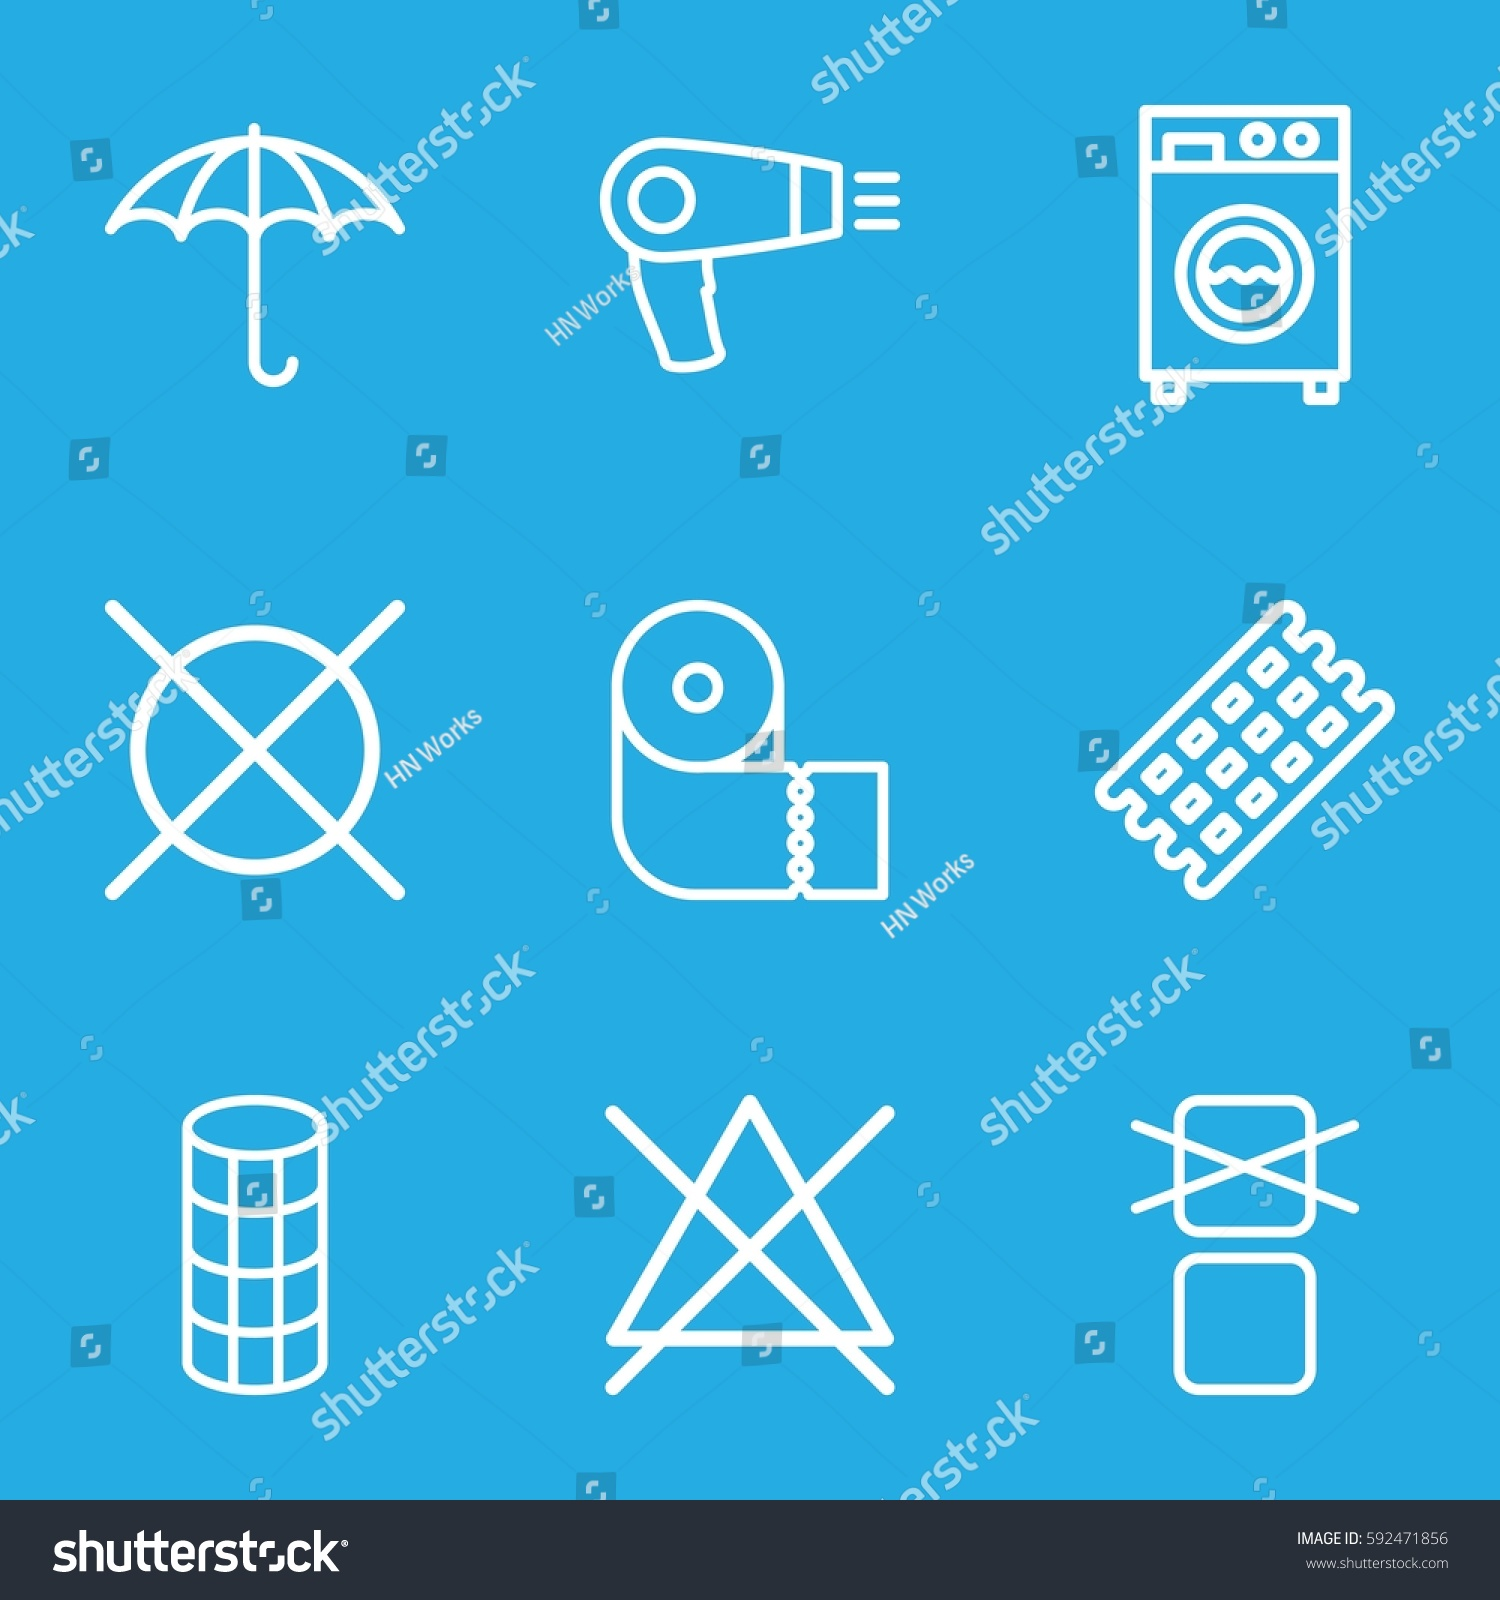 How Does Hair Dryer Work Diagram Trusted Schematics Wiring For A Works Diagrams Tracing The Path Of Energy